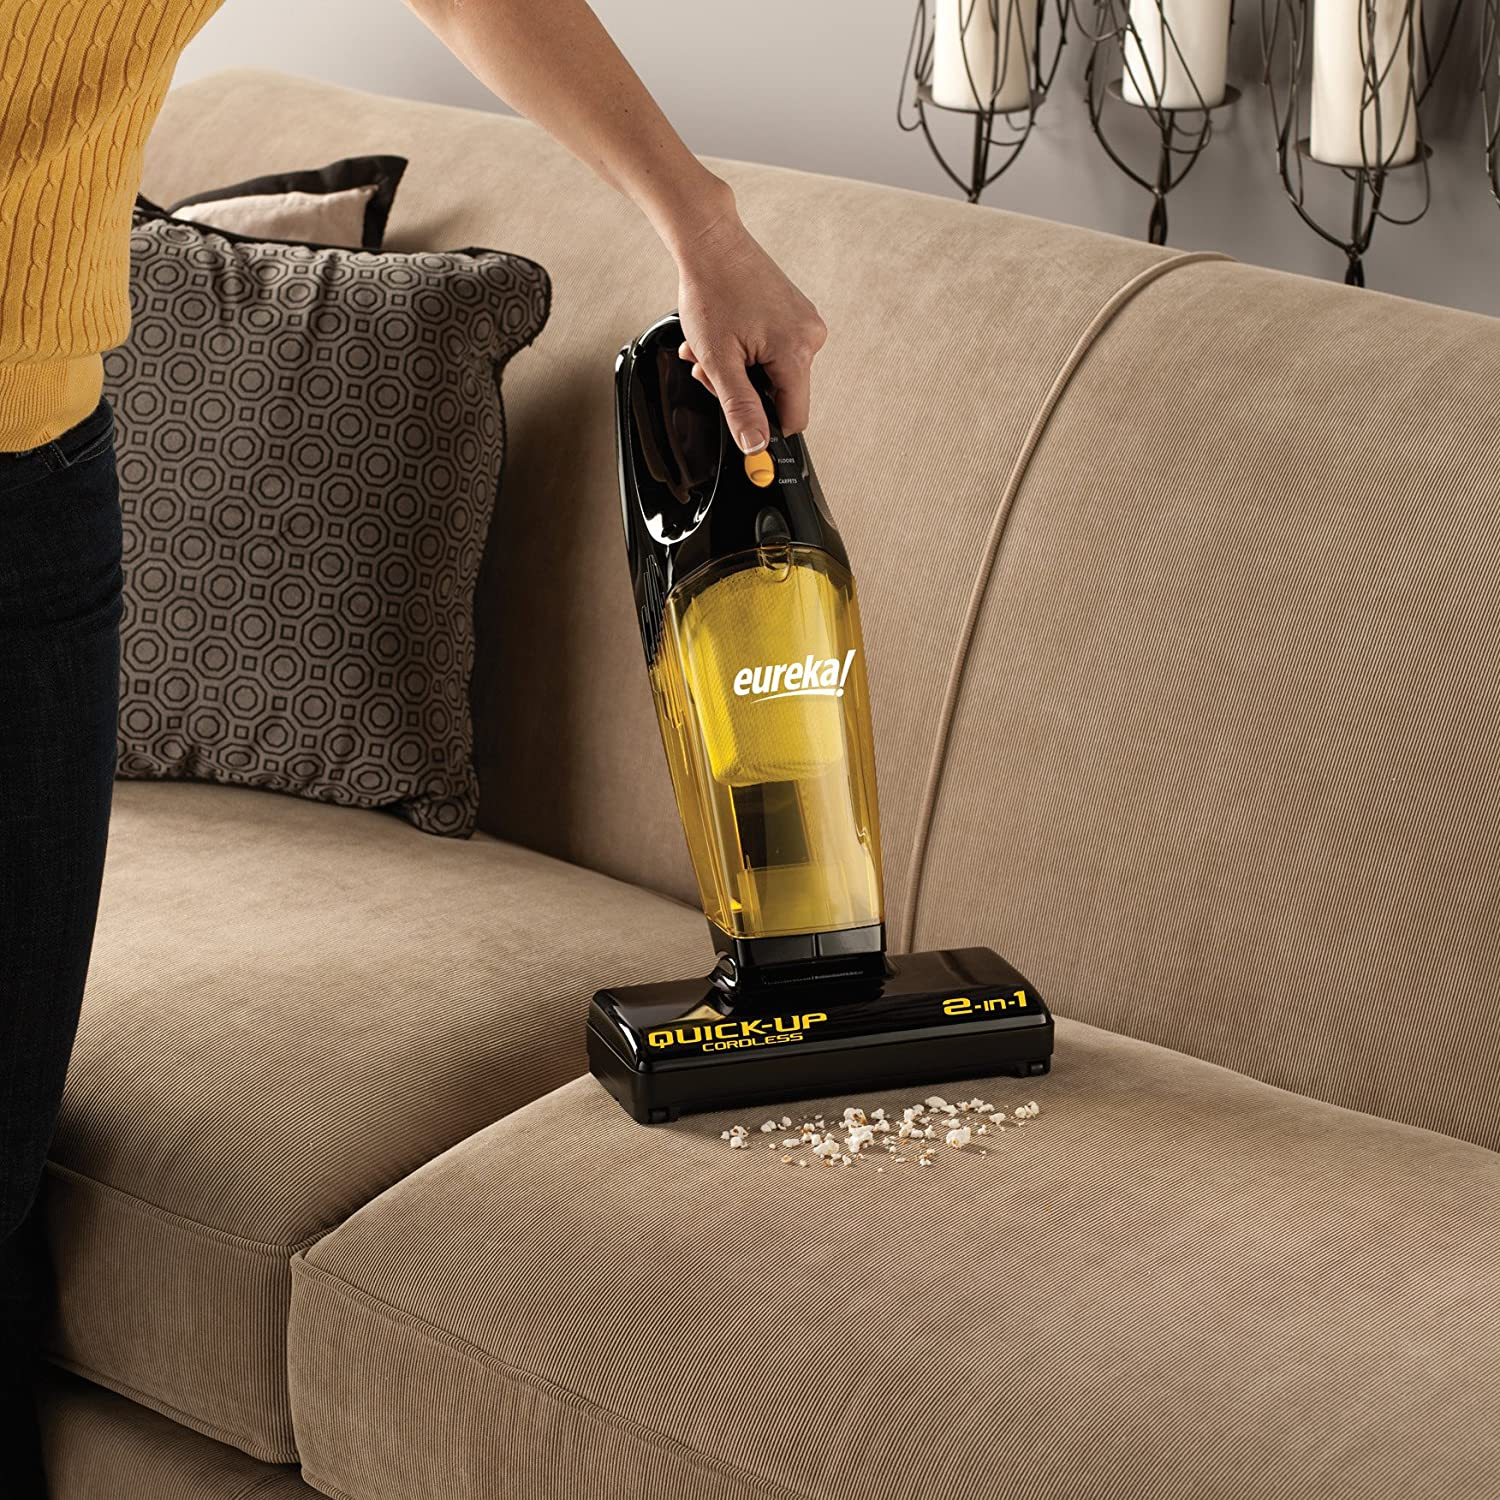 Eureka Quick-Up Cordless 2-in-1 Stick Vacuum, 96H Review